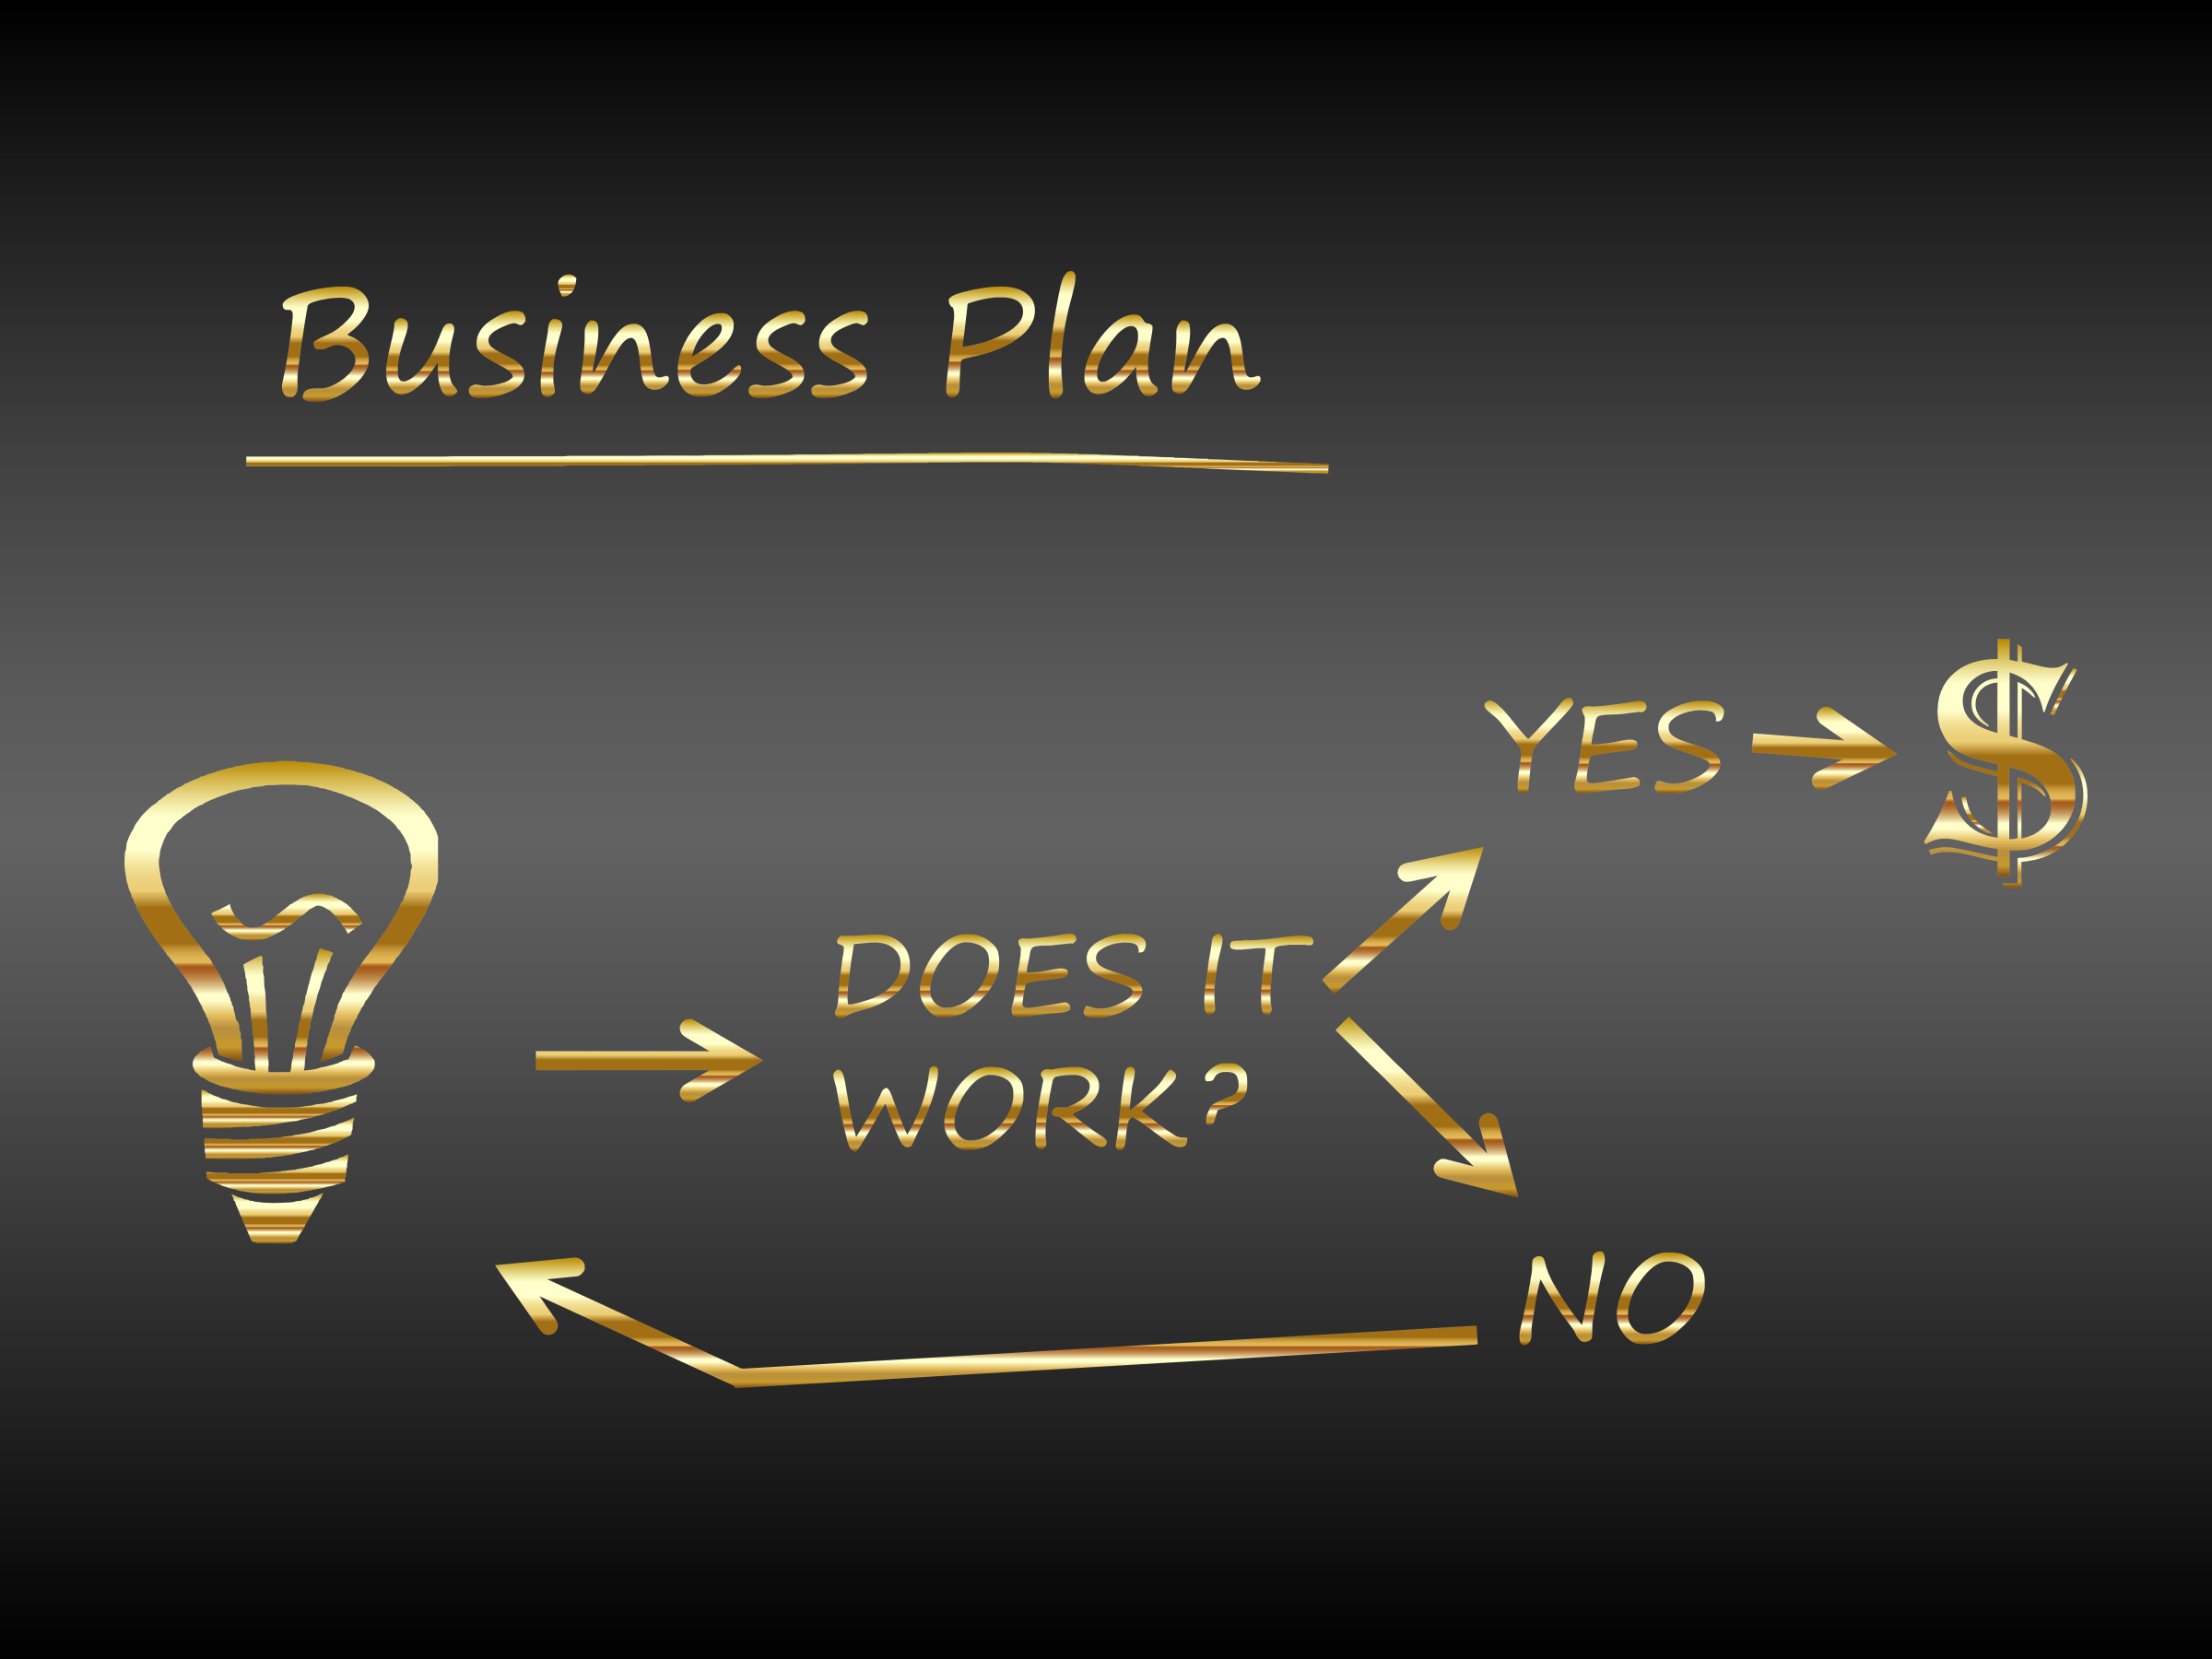 Business Plan Flow Chart Gold Text by GDJ